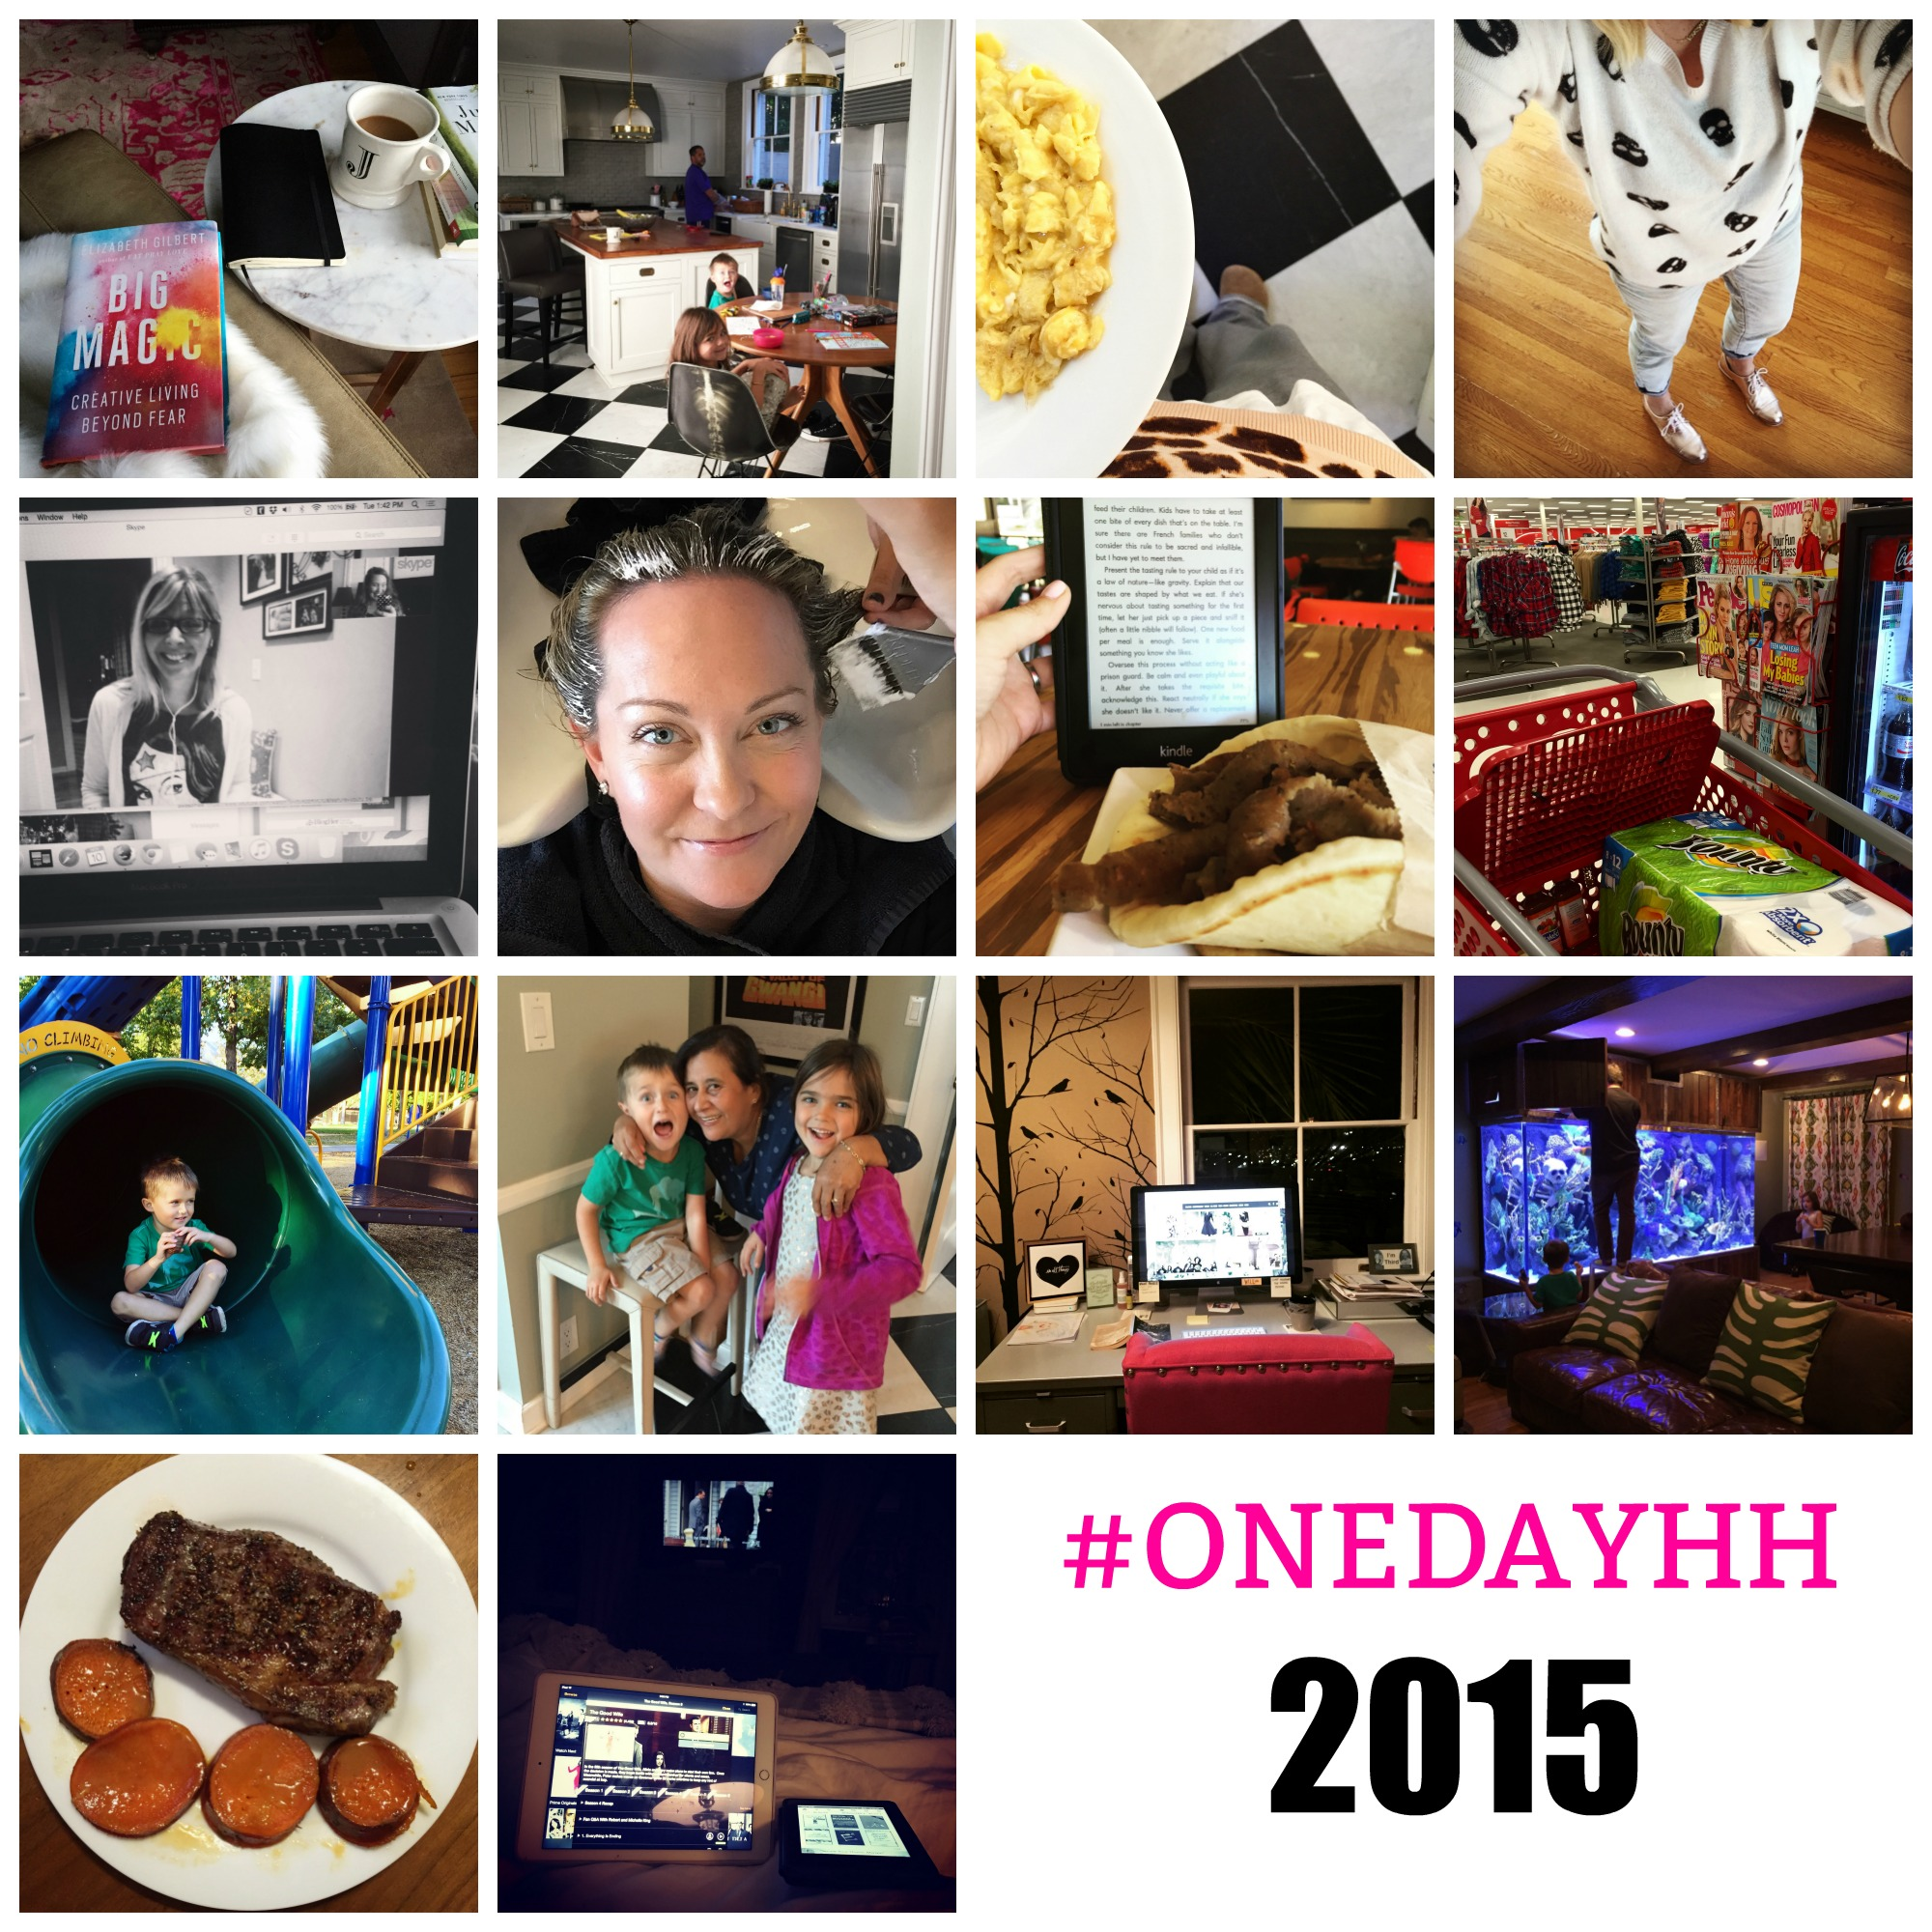 #ONEDAYHH 2015 collage.jpg